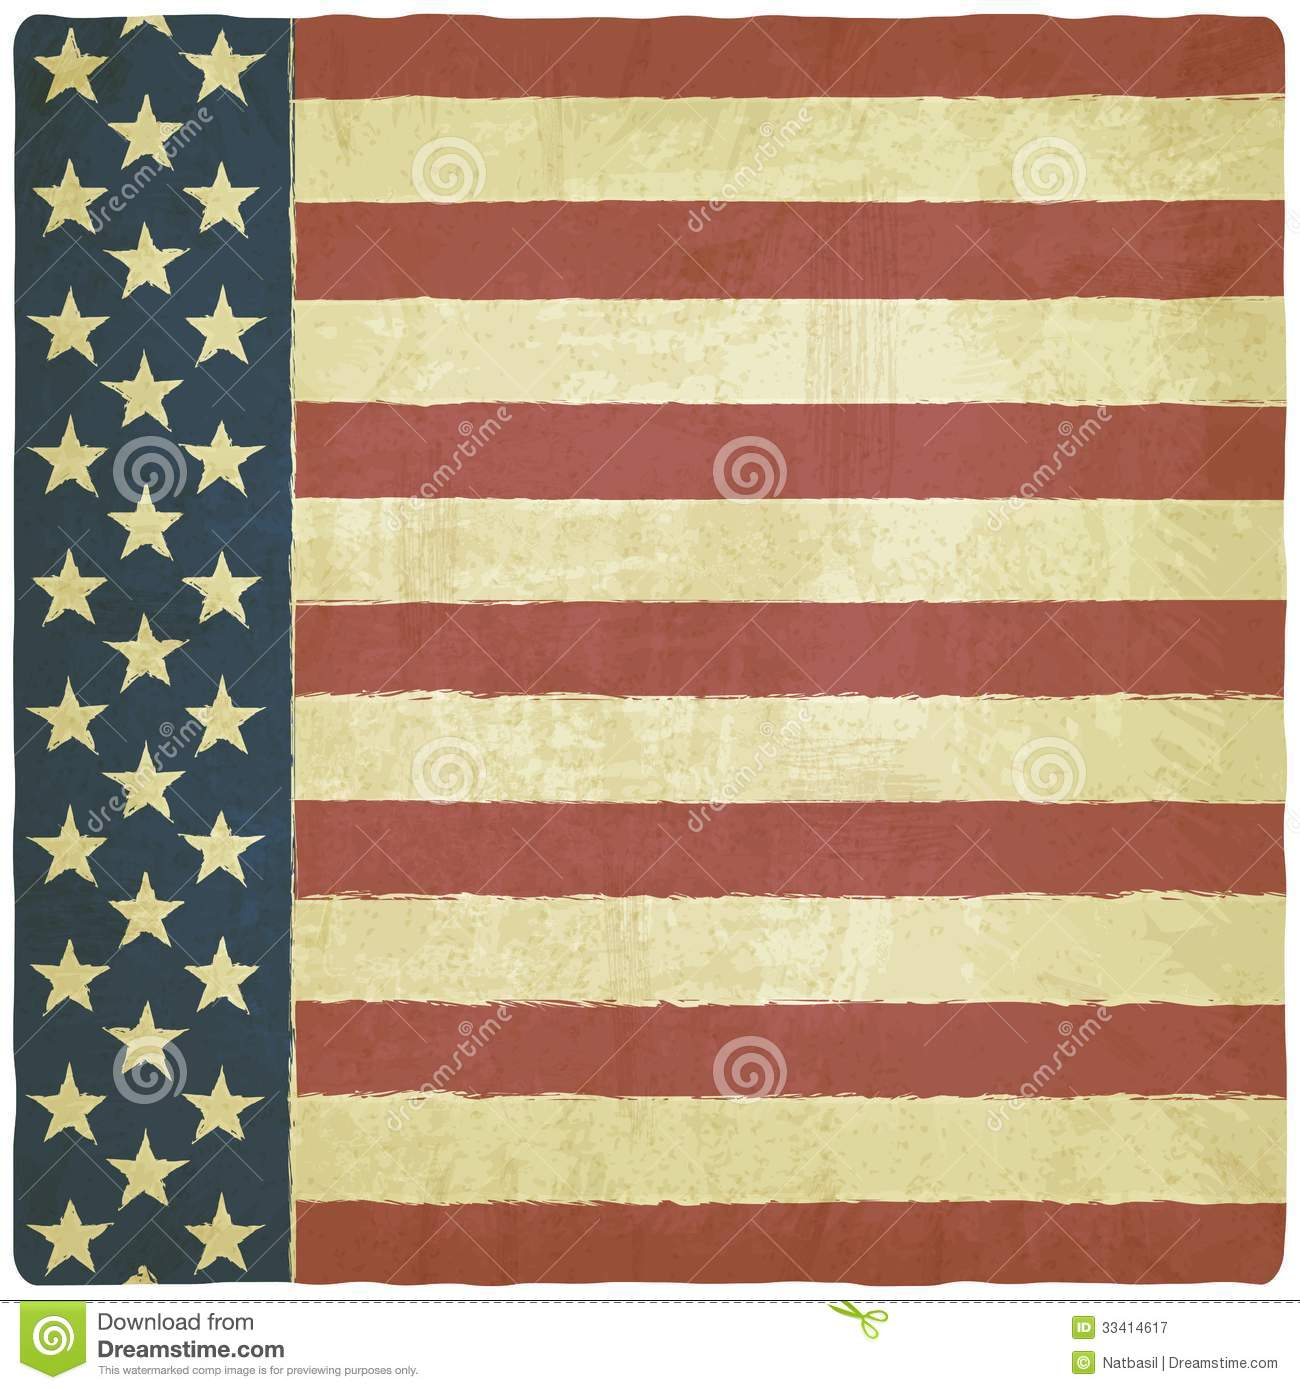 Vintage Americana Background Vintage background withVintage Americana Background